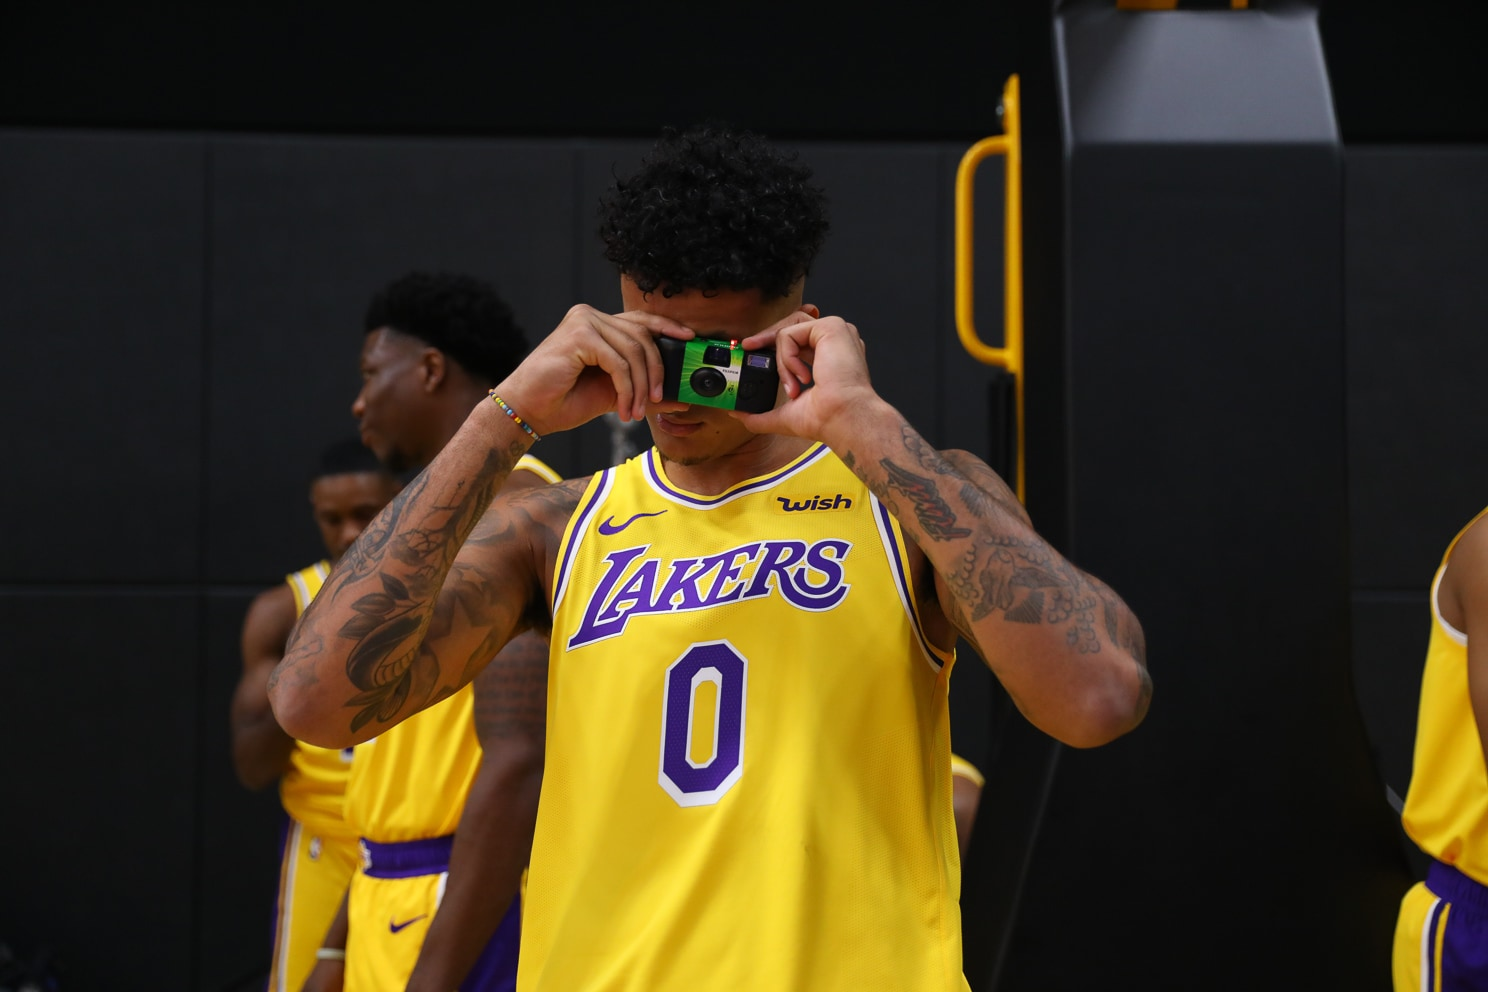 Lakers hosted their 2019 Media Day on Monday in the UCLA Health Training Center in El Segundo.(J Diaz/Lakers.com/Joseph Sherman/Erica Martin)